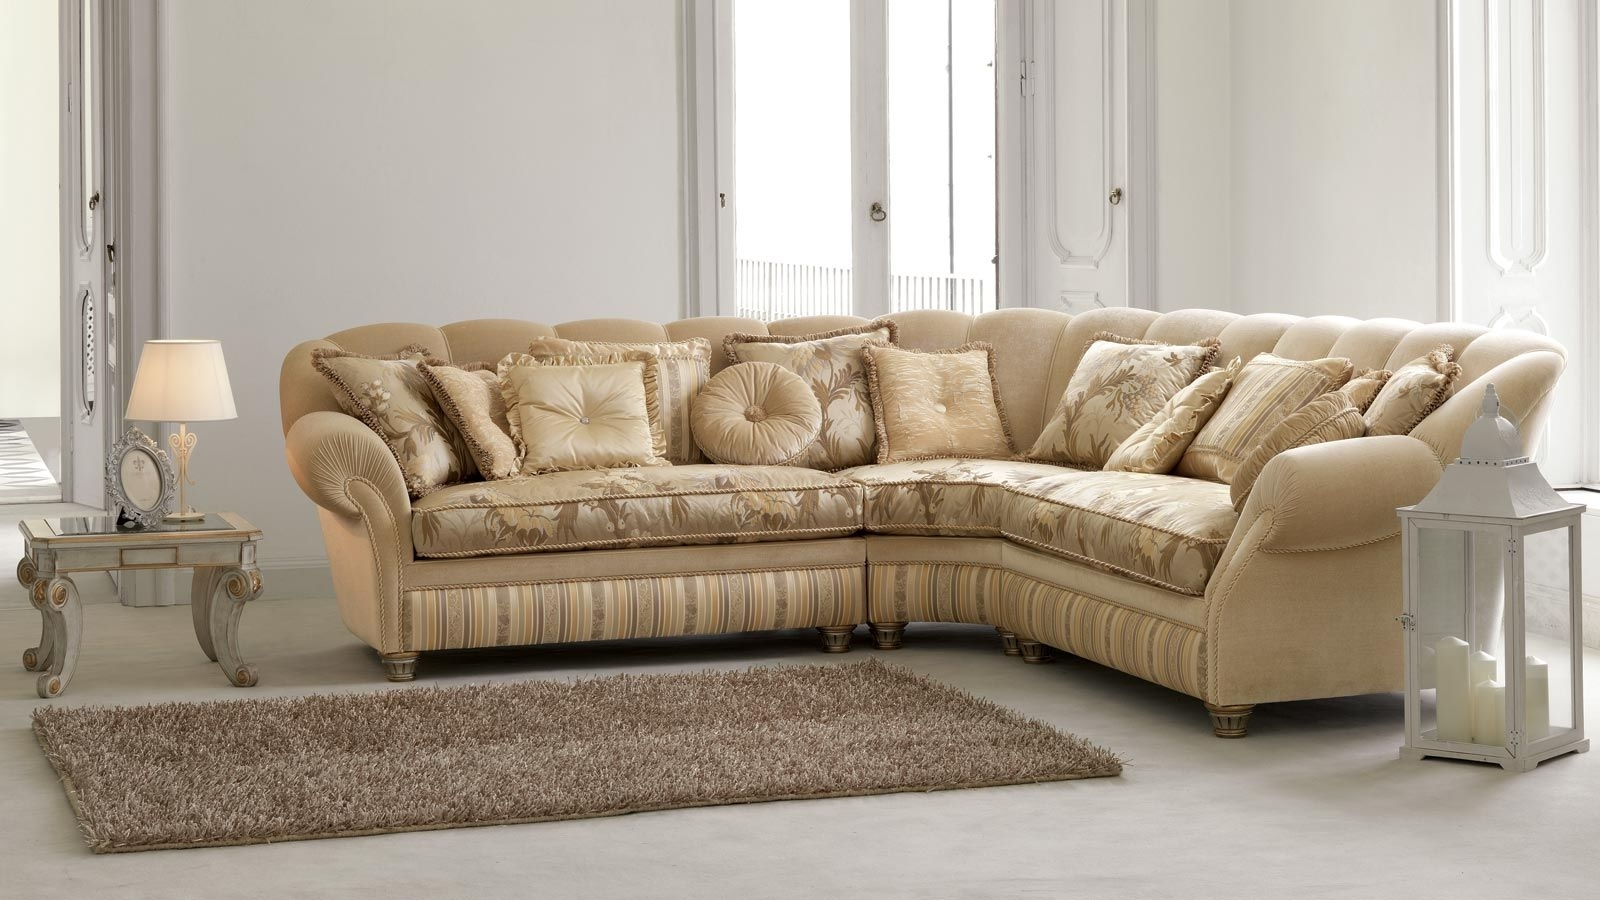 Most Current Furniture : Sectional Sofa 80 X 80 Corner Sofa Extension Sectional In 80x80 Sectional Sofas (View 9 of 20)